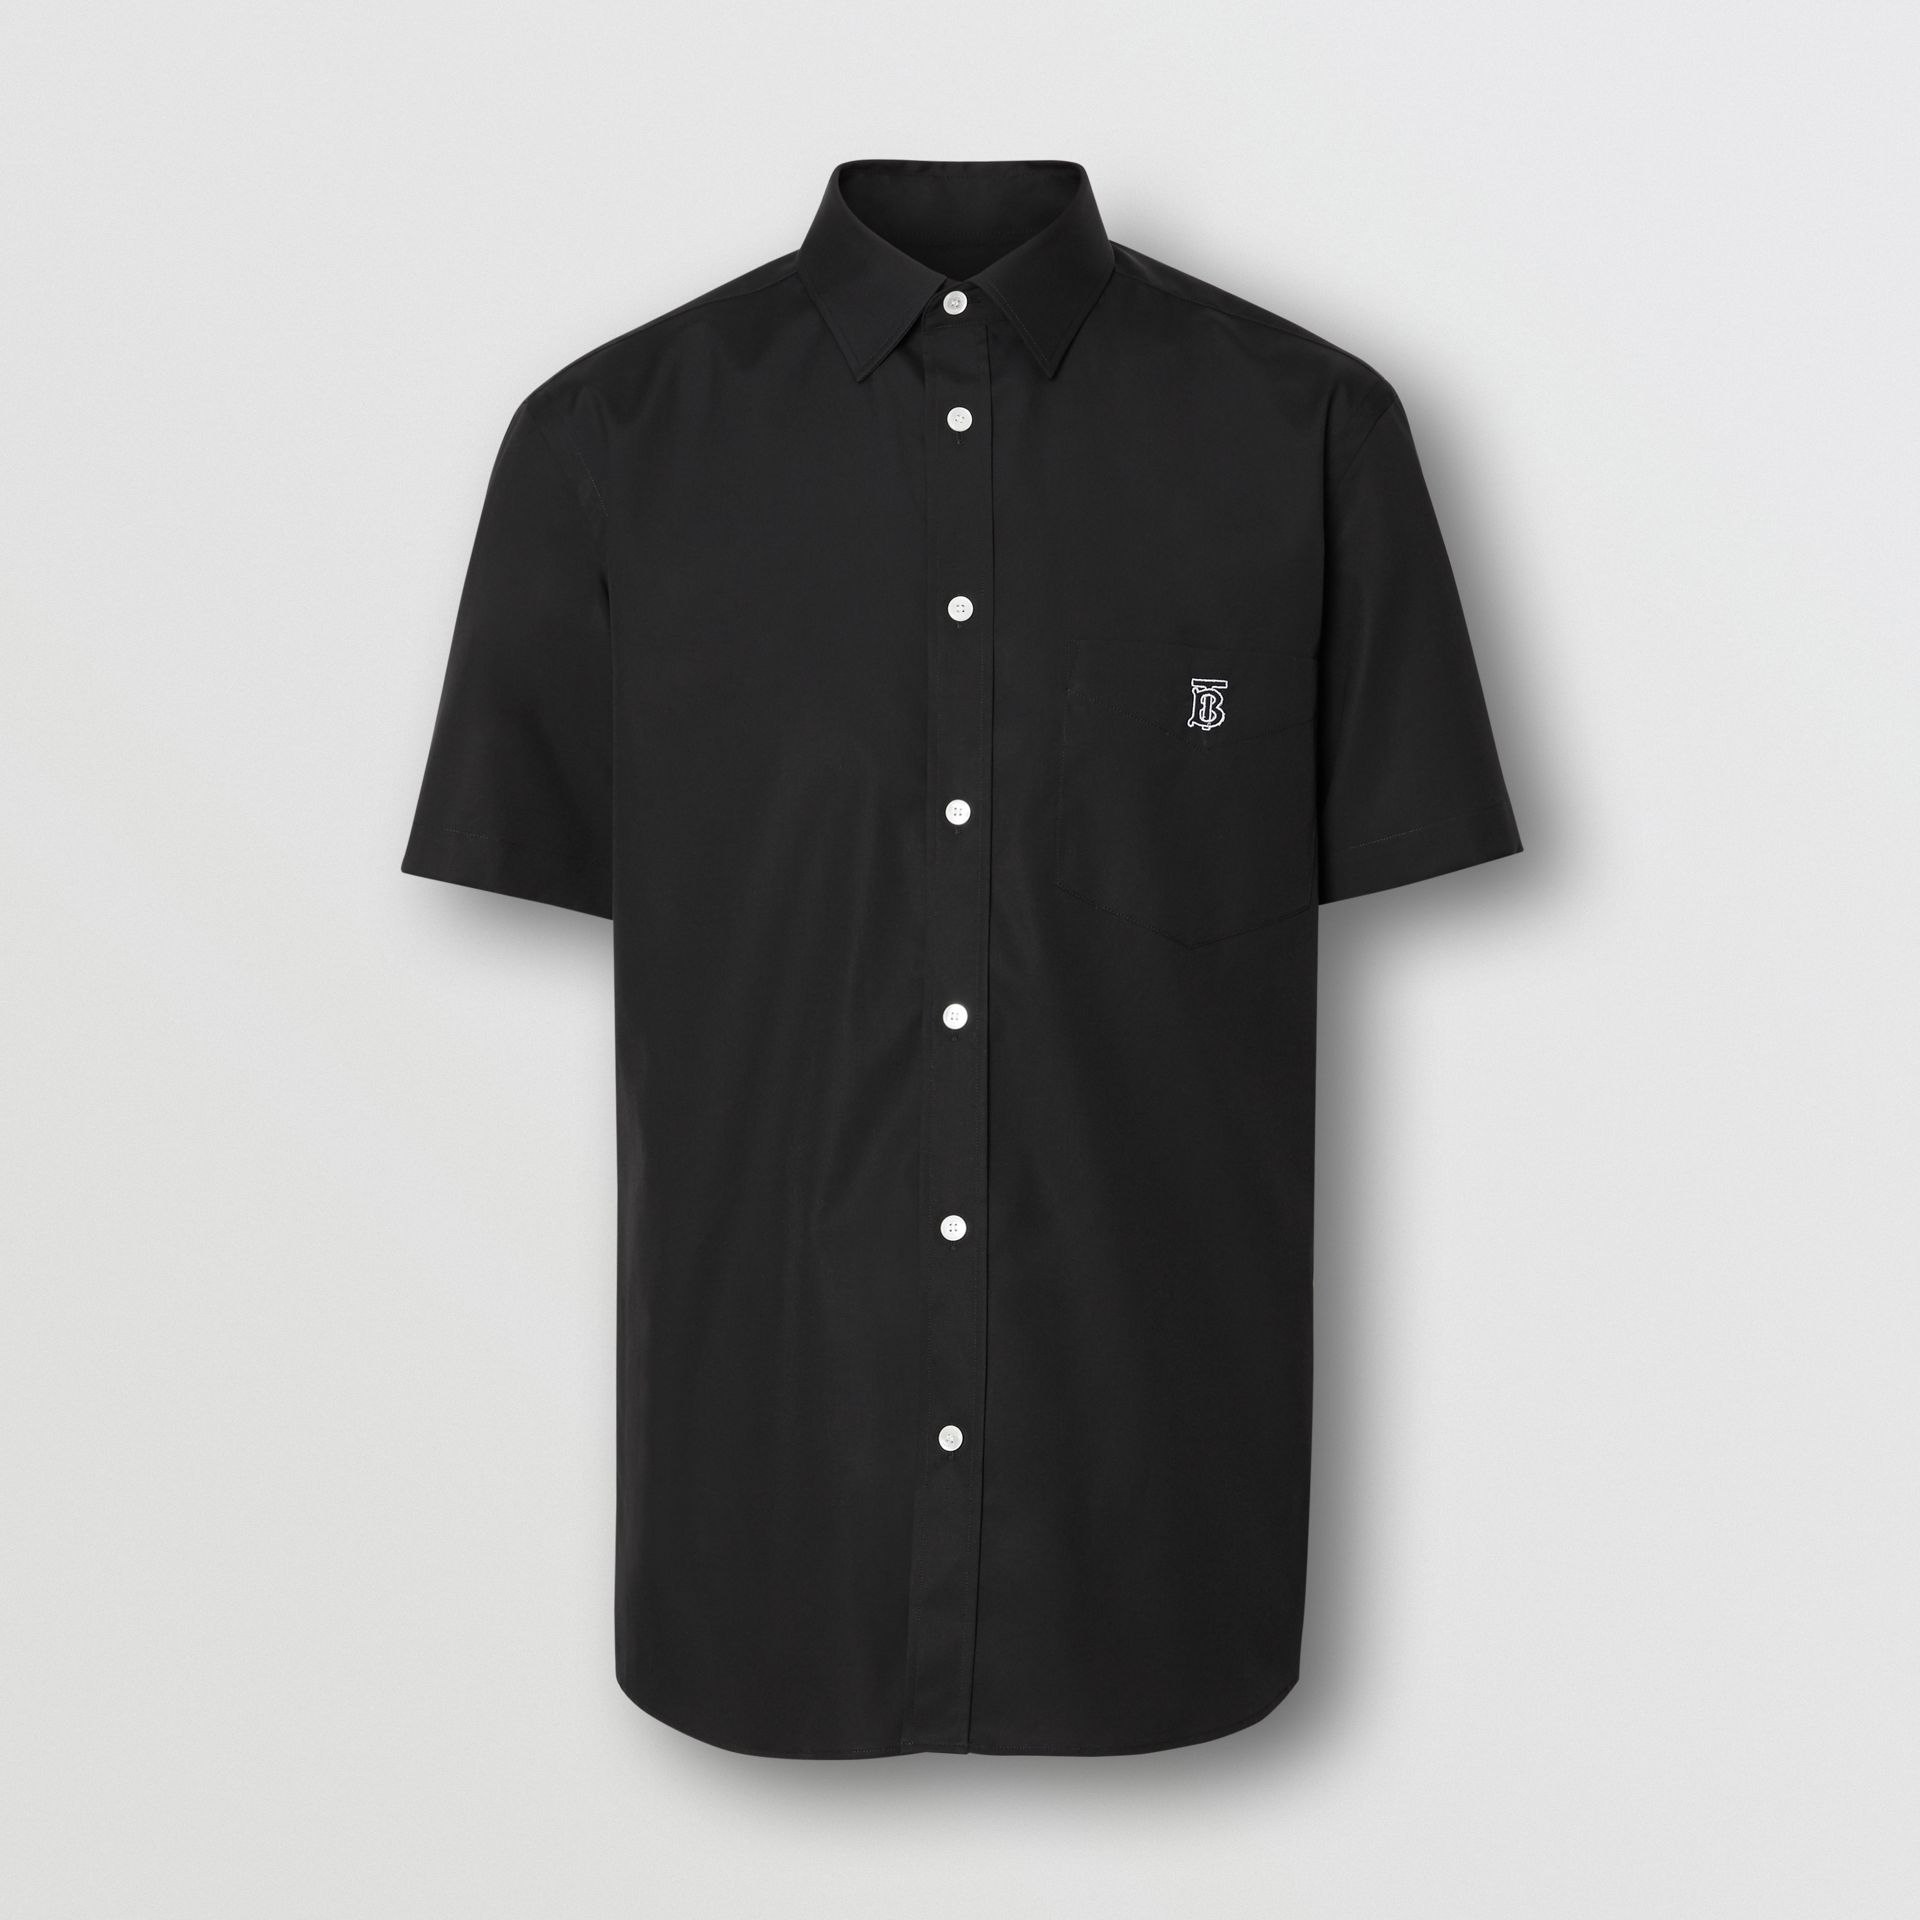 Short-sleeve Monogram Motif Stretch Cotton Shirt in Black - Men | Burberry - gallery image 3